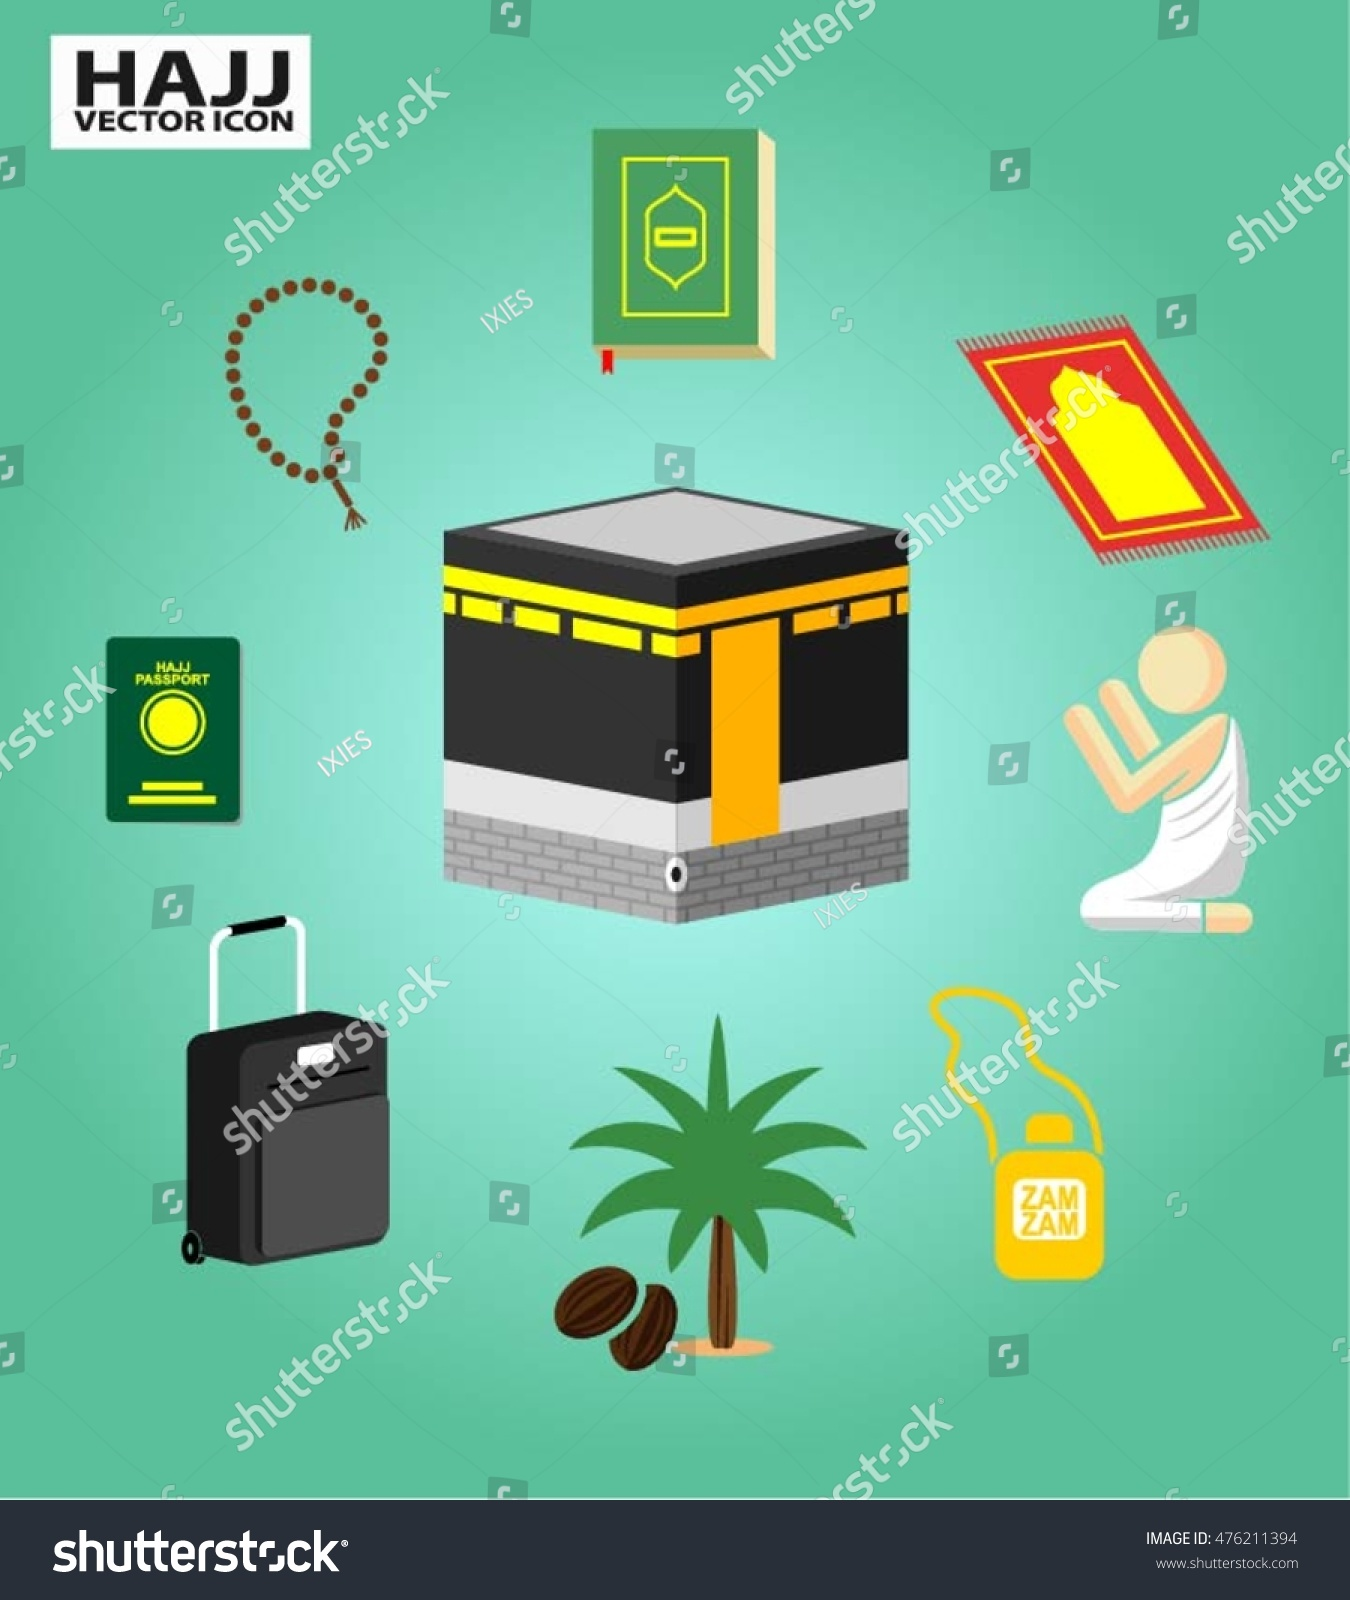 hajj vector icon isolated